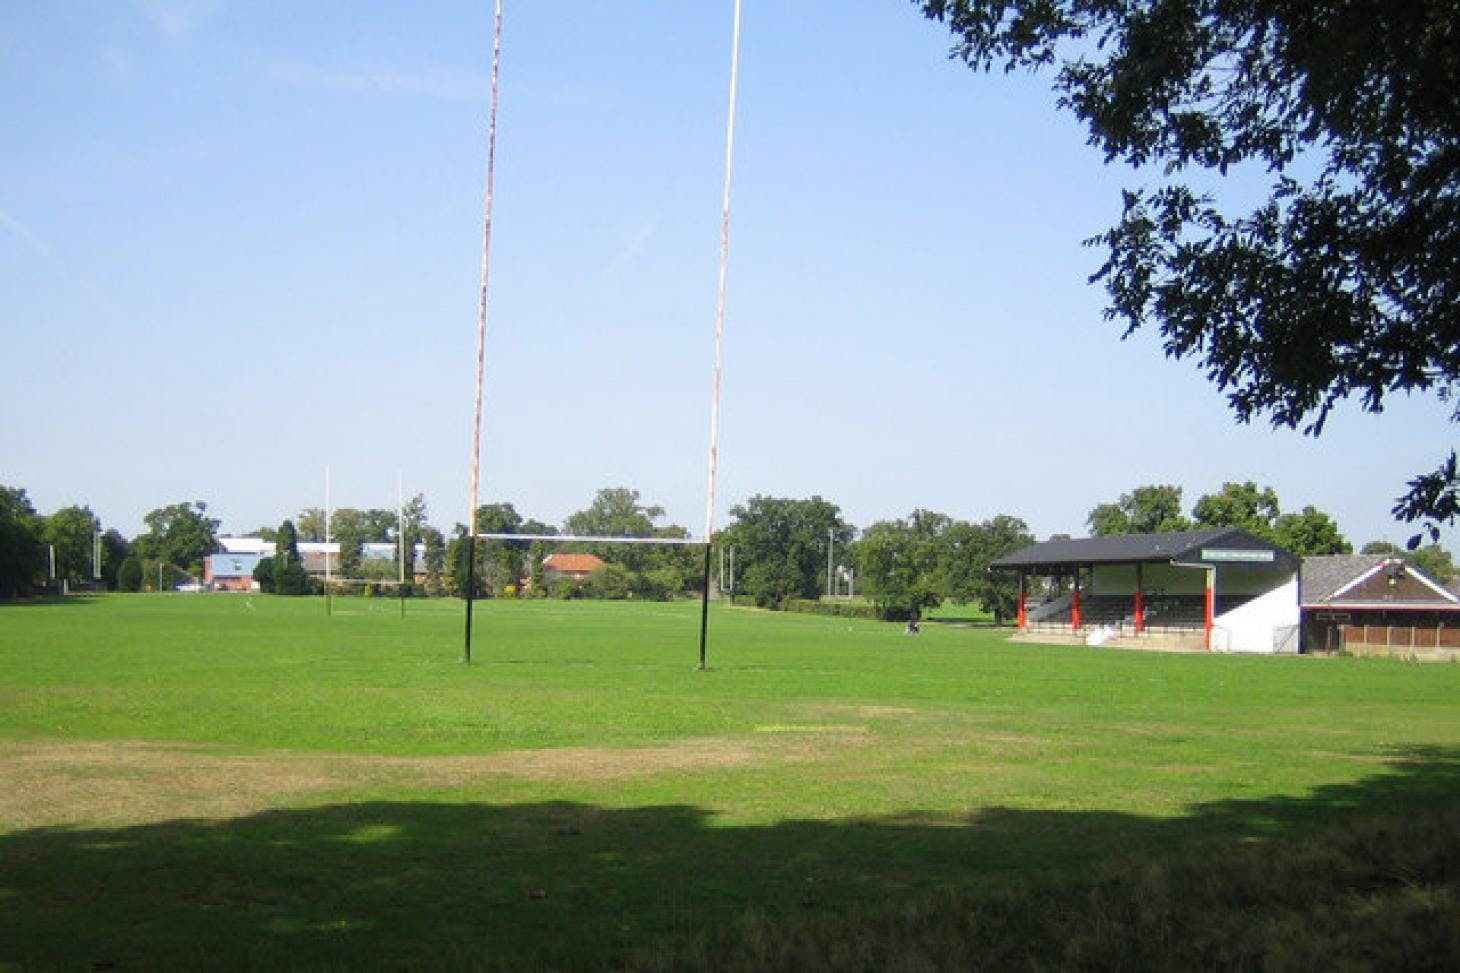 Bramley Road Sports Ground 11 a side | Grass football pitch